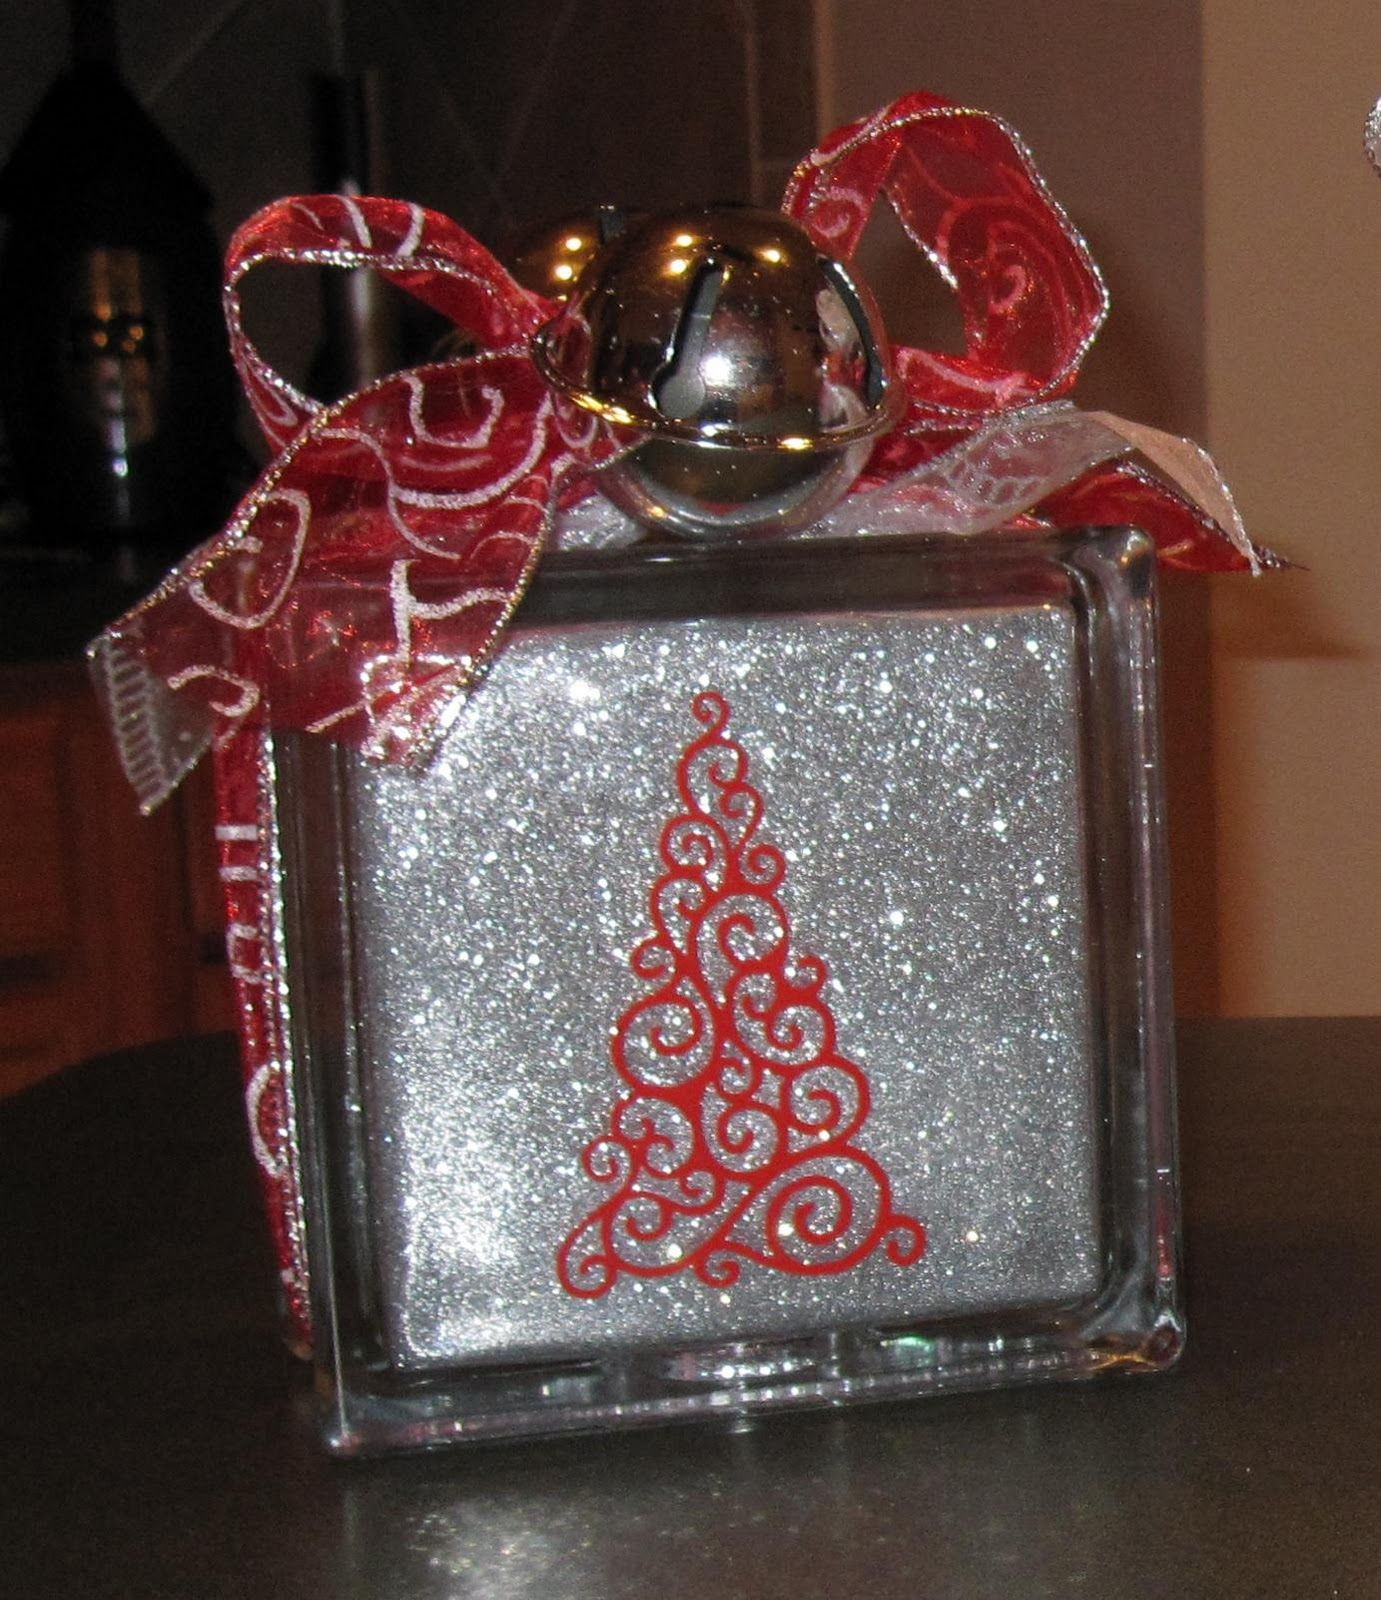 Creative Cricut And Vinyl Projects On Pinterest: Paper Crafting Chic: Glass